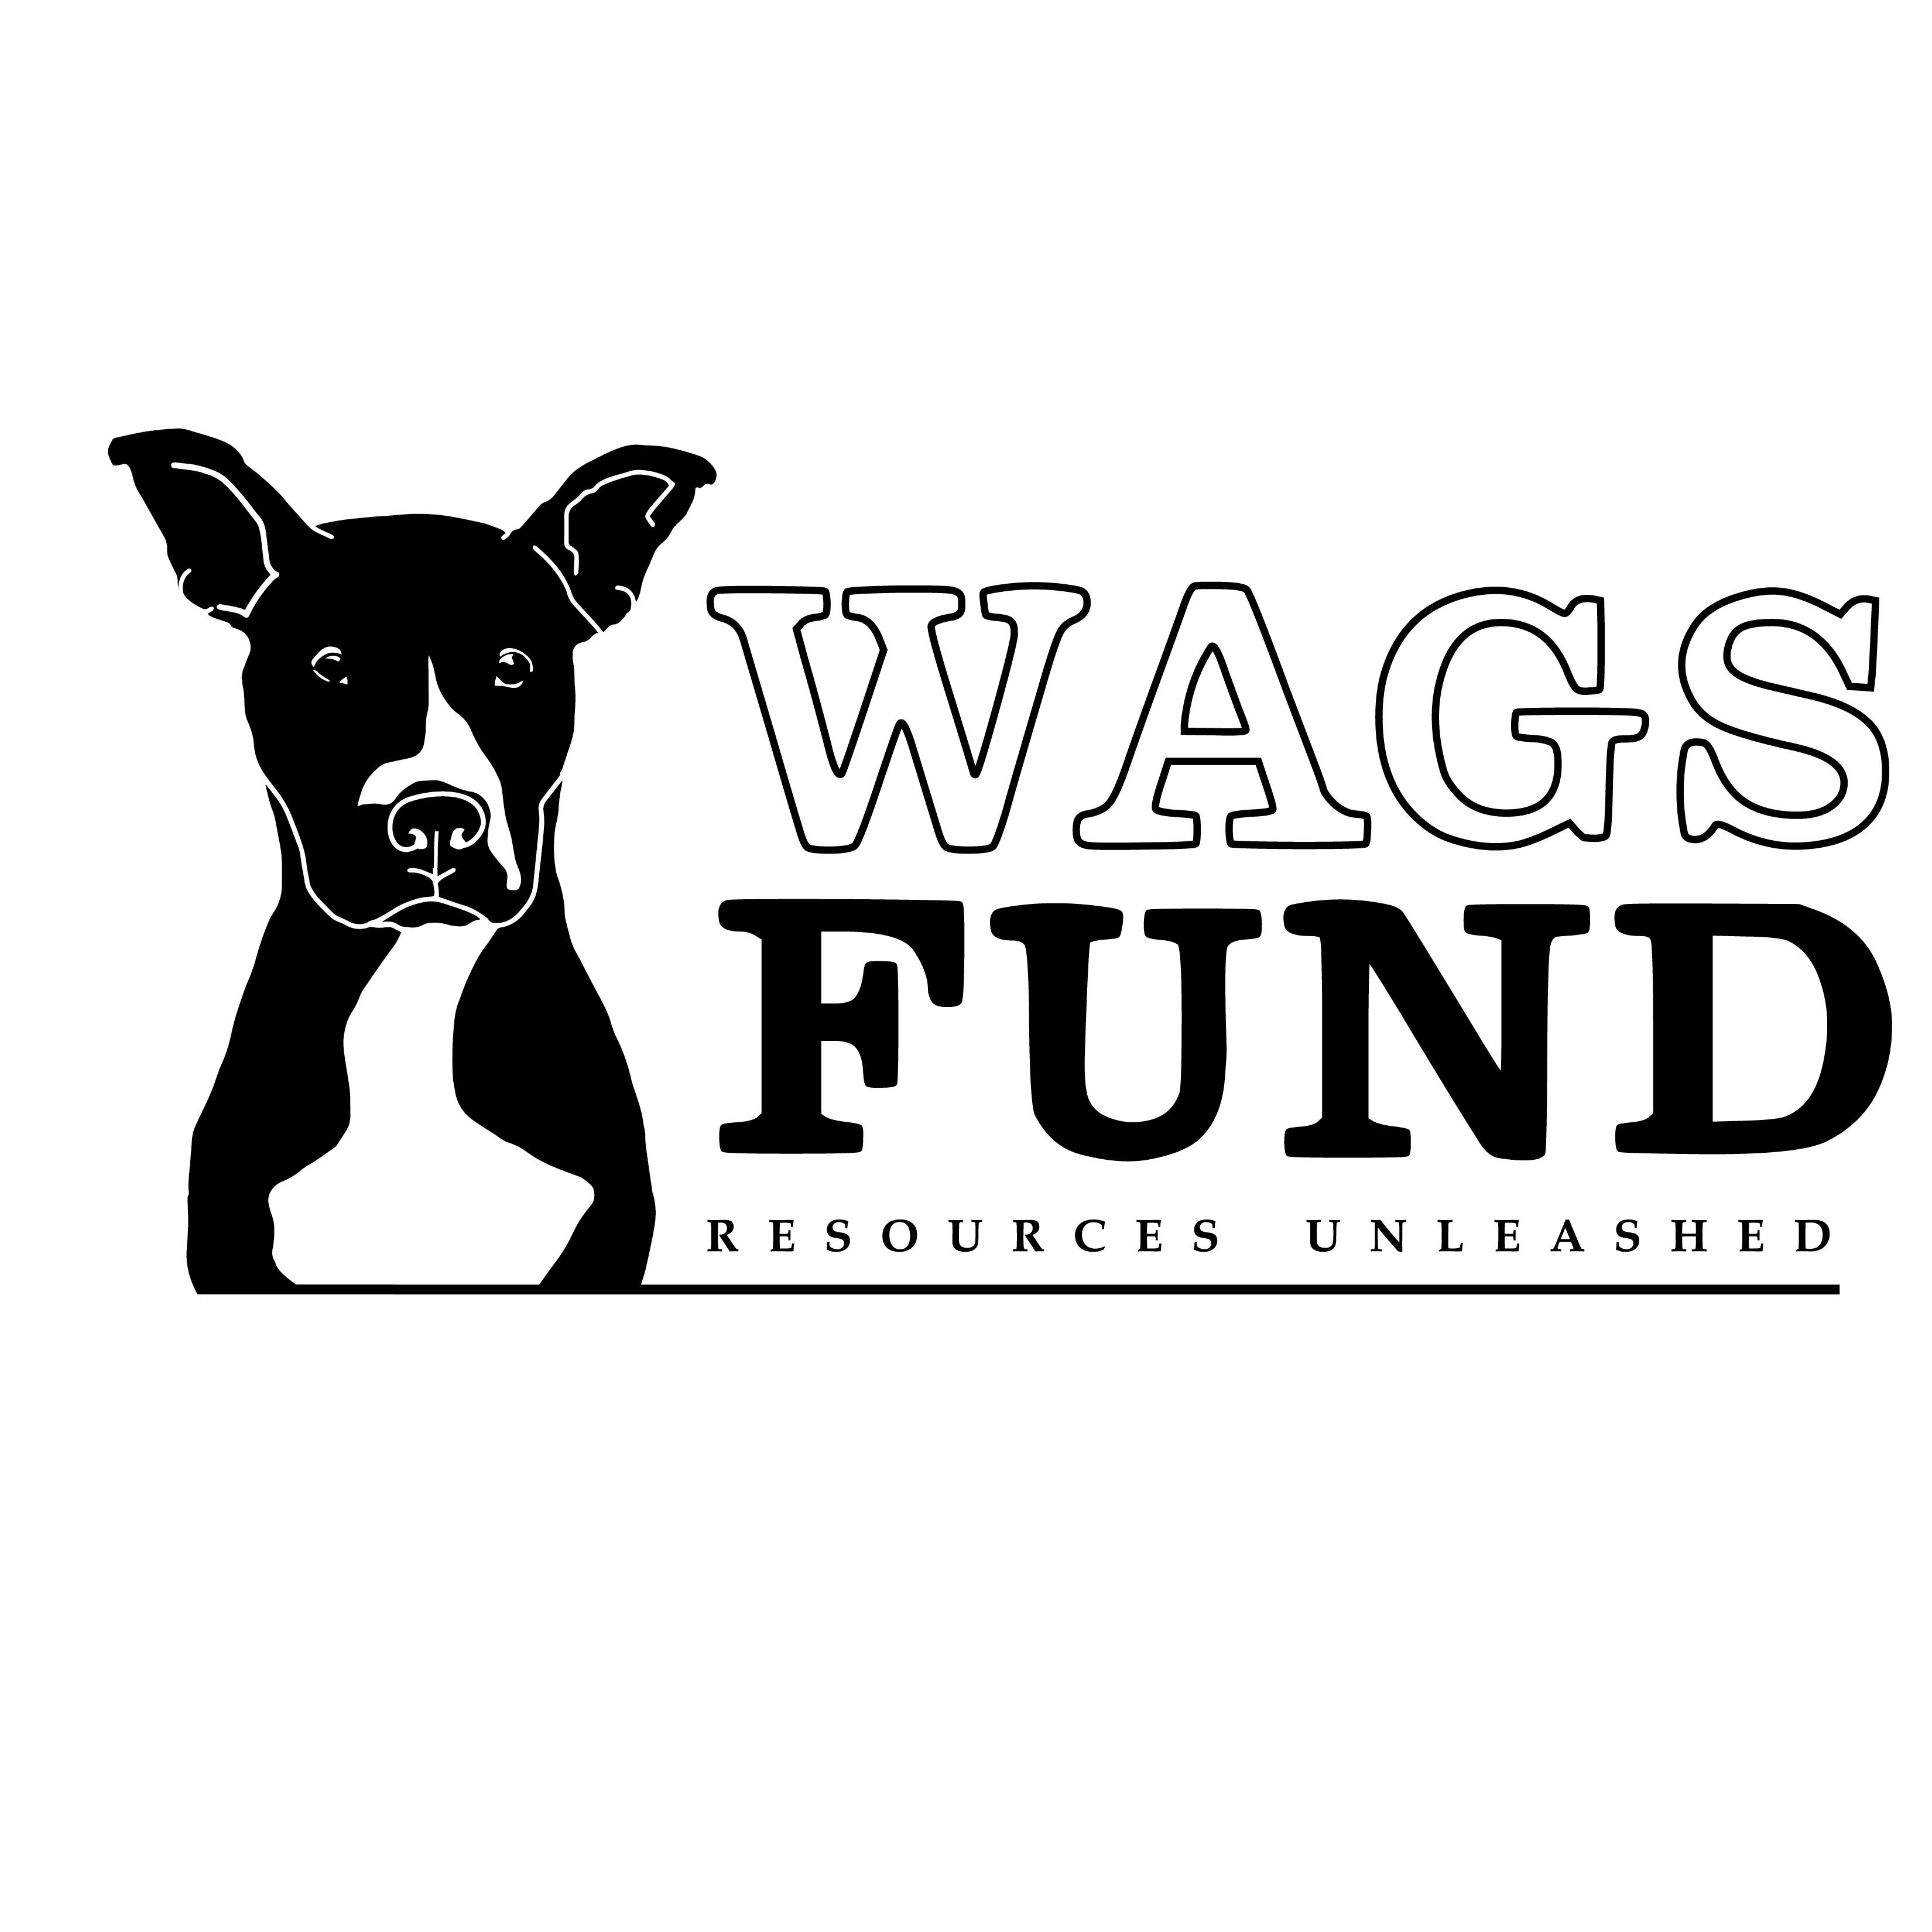 WAGS Fund